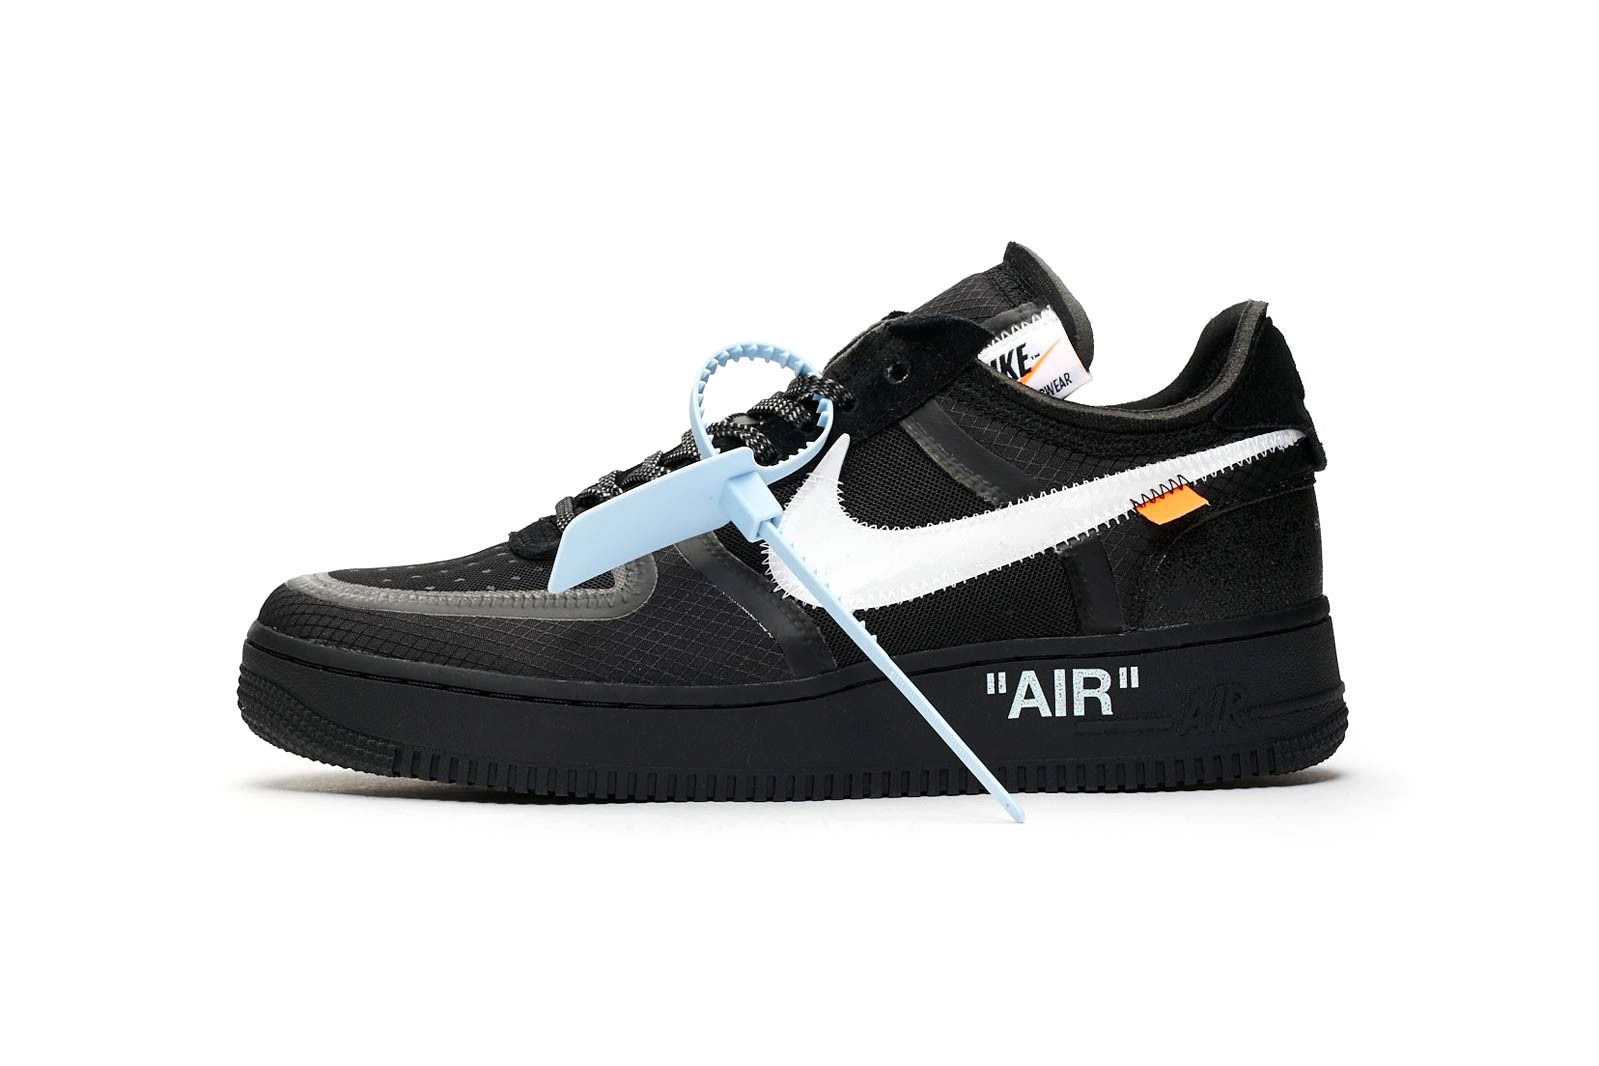 A Clean Look At The Off White X Nike Air Force 1 Black White Nikes Nike Air Force Nike Air